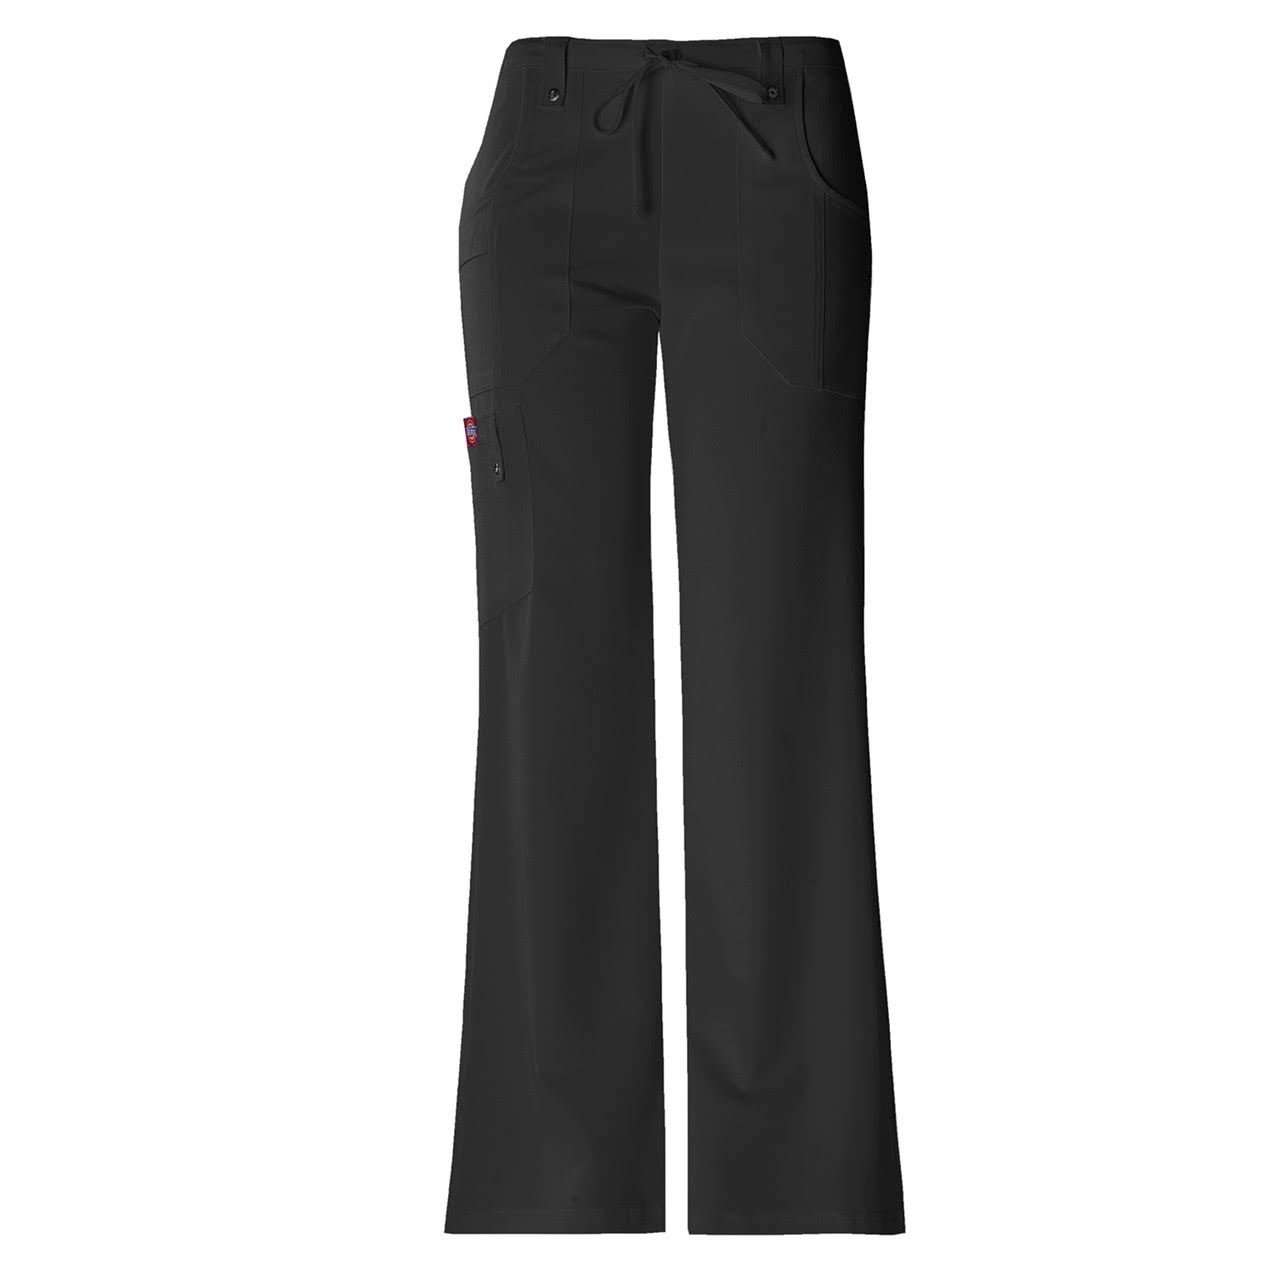 Dickies 'Drawstring Flare Leg Scrub Bottoms Pants - Black, Medium